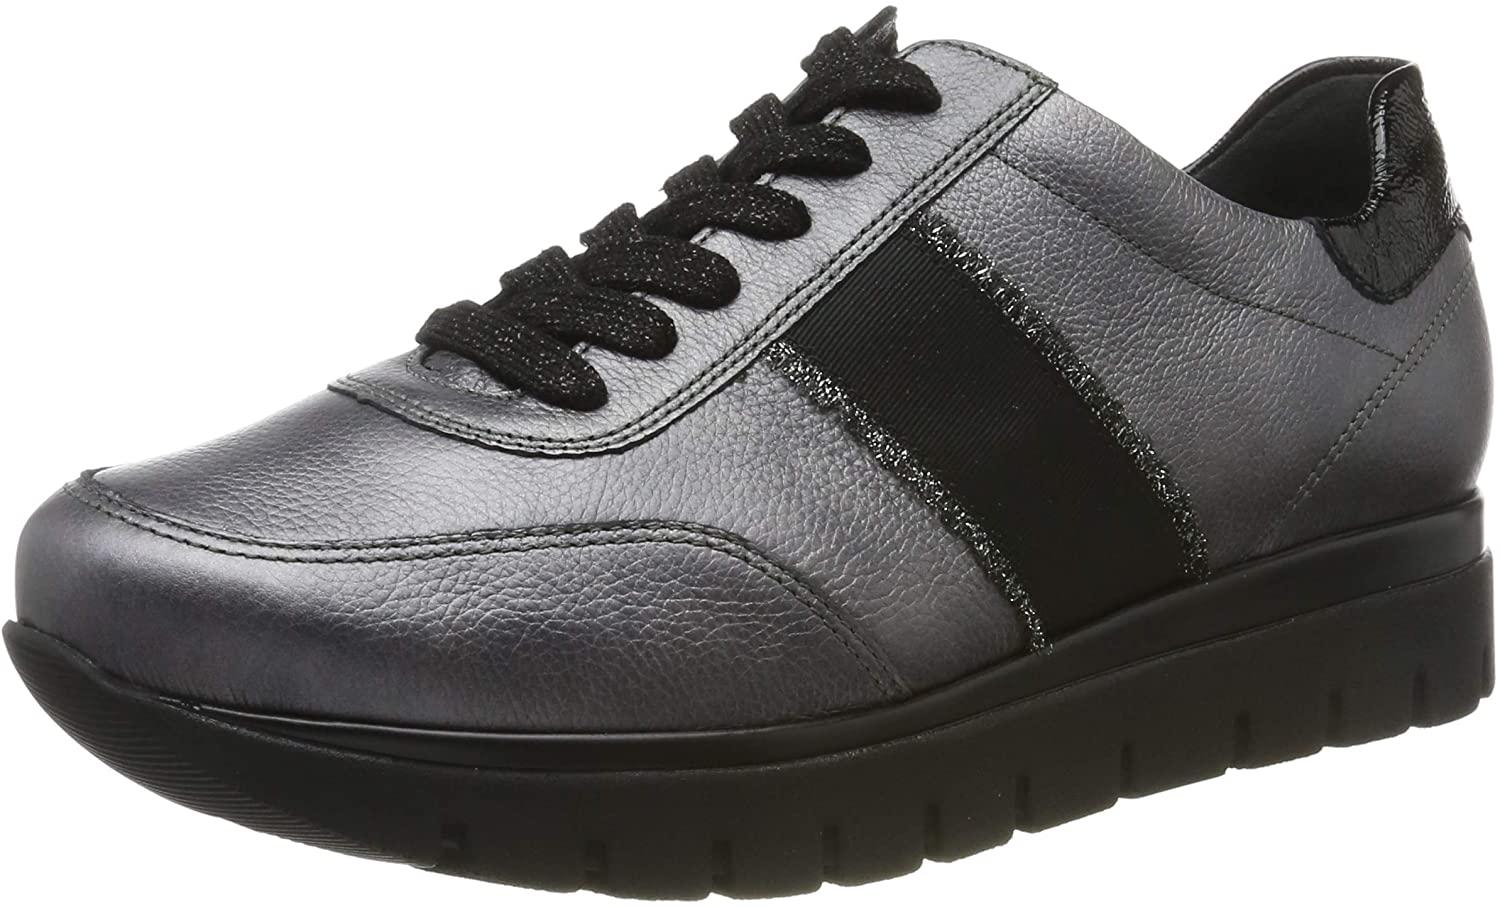 Semler Women's Derby Lace-Up, Grey Grau Schwarz 170, 3.5 UK